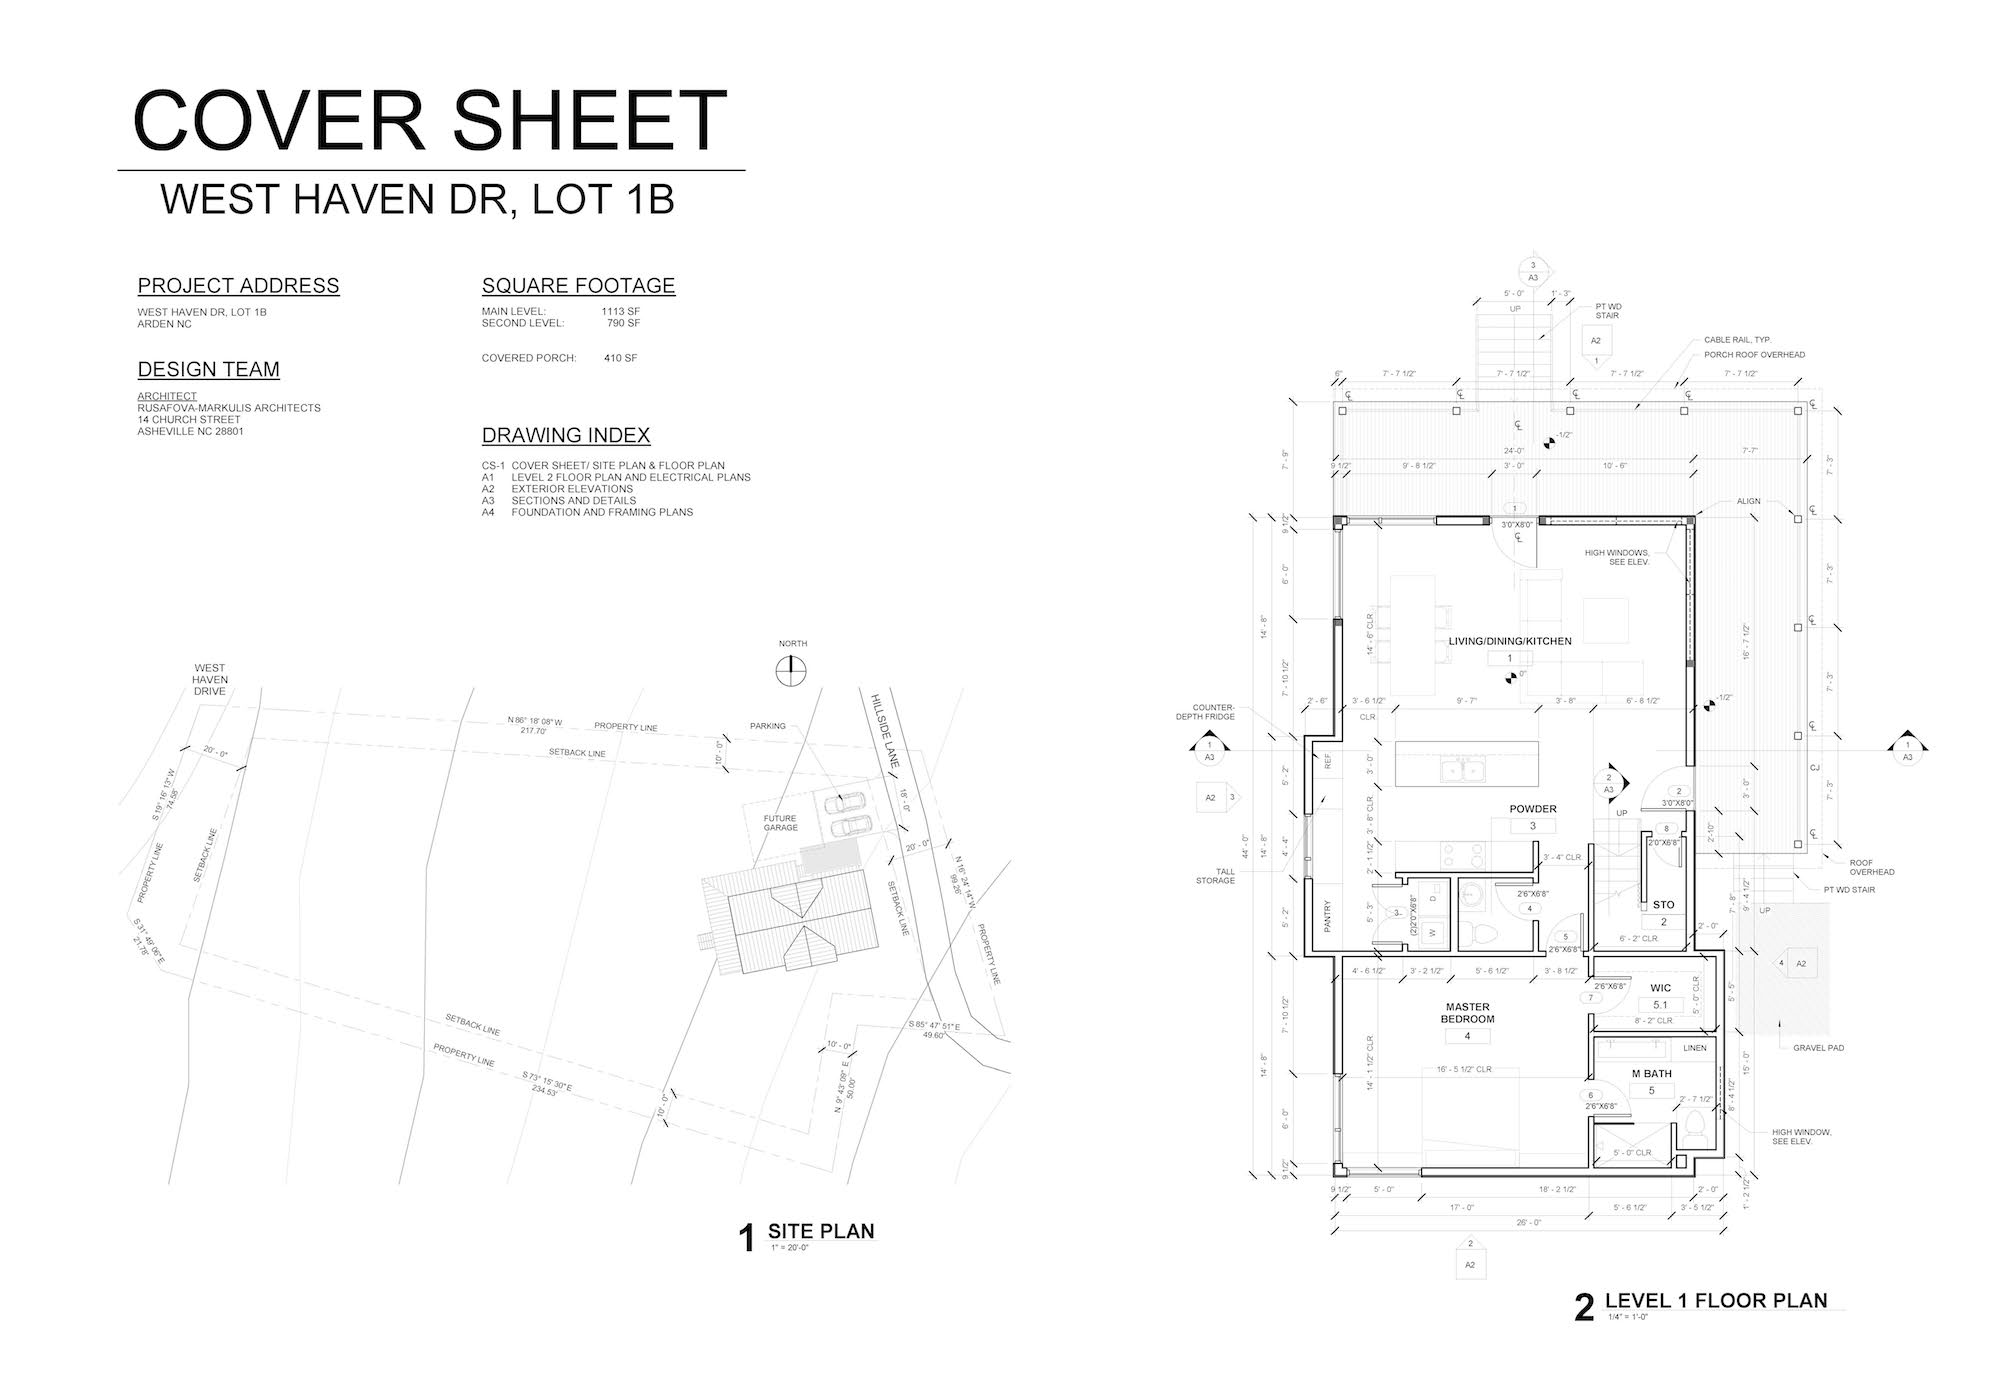 P12 11 West Haven_Plan_2018.02.20 (1)_Page_1.jpg